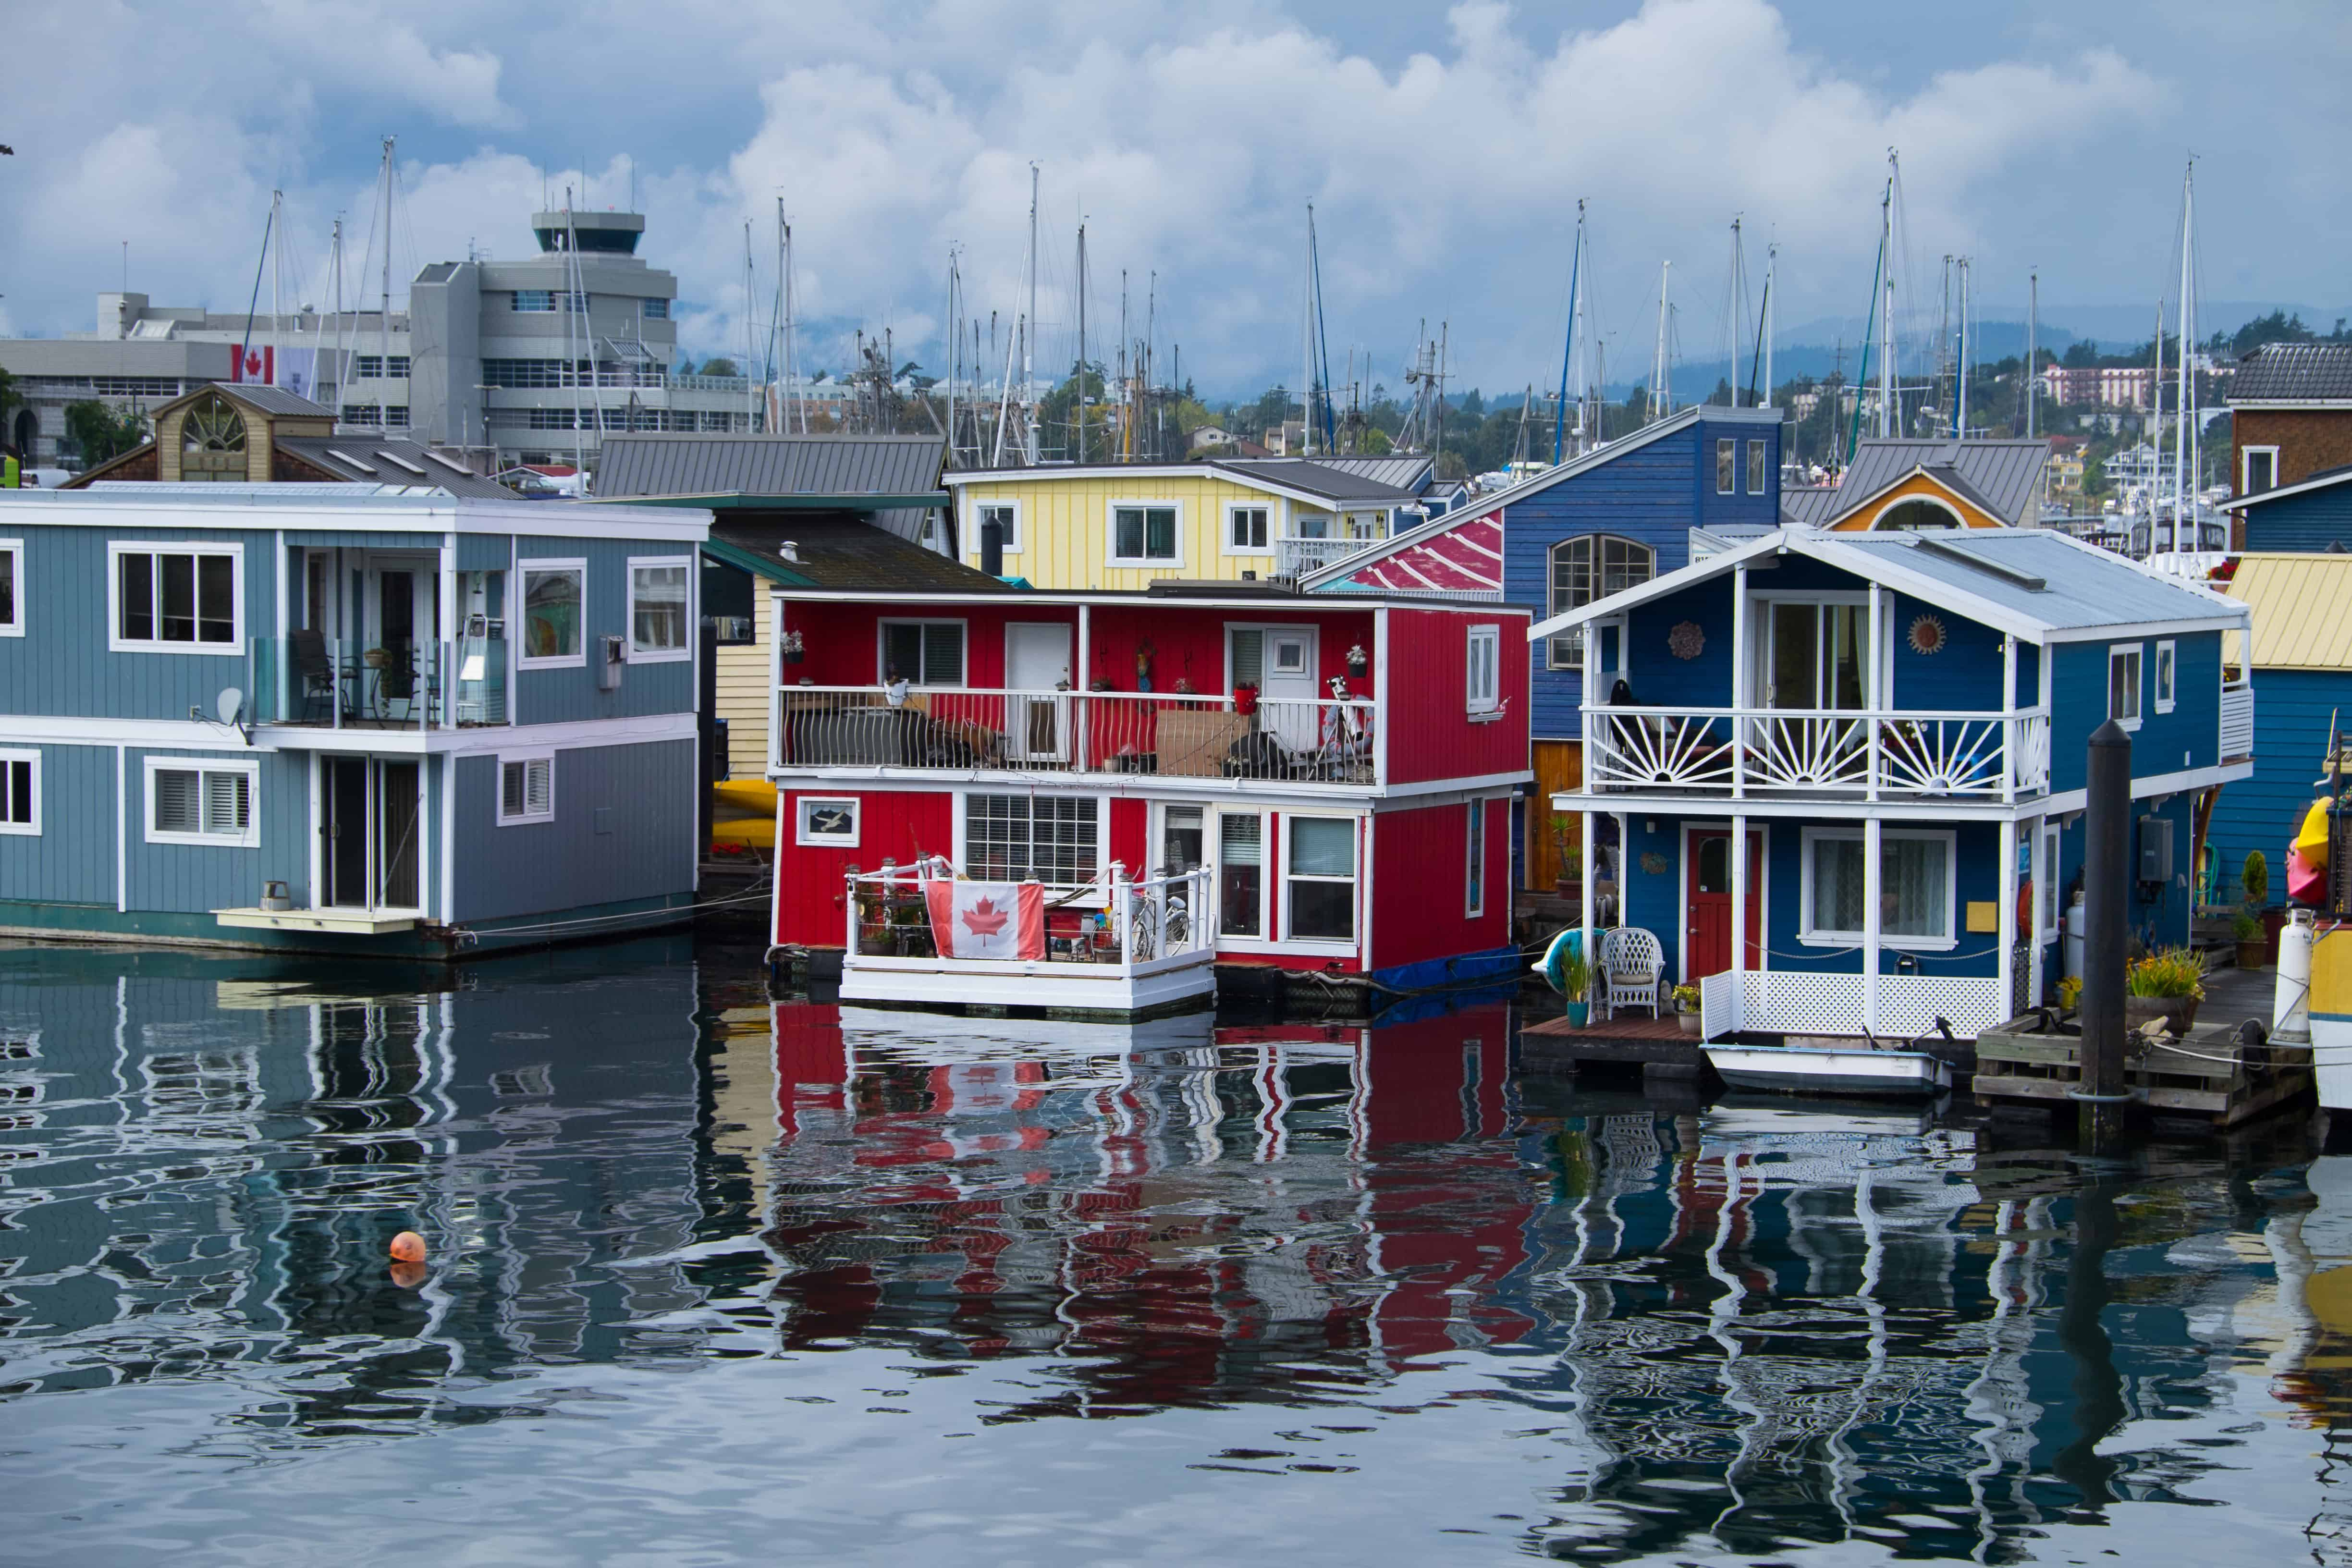 Floating homes at Fisherman's Wharf in Victoria, BC (Canada).